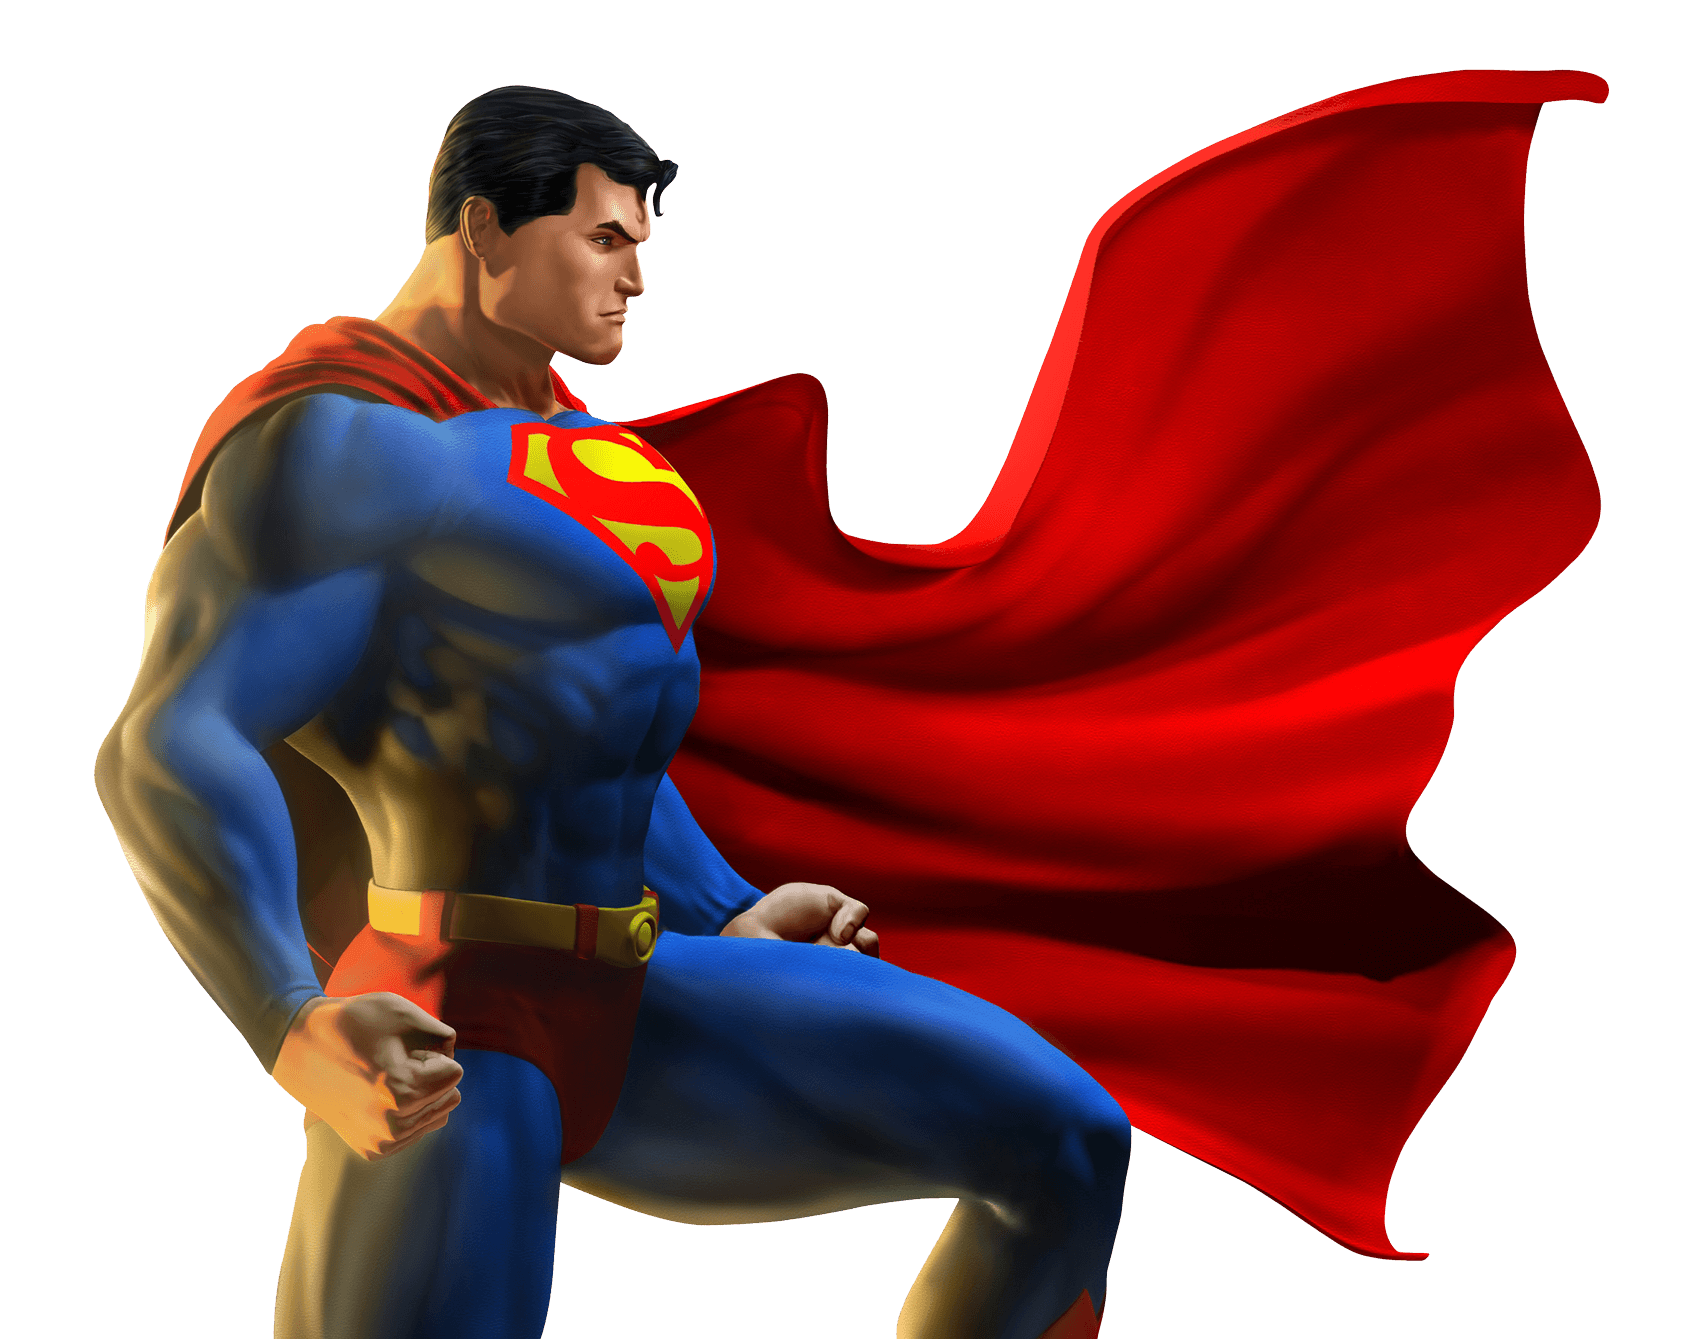 Superman png. High definition quality